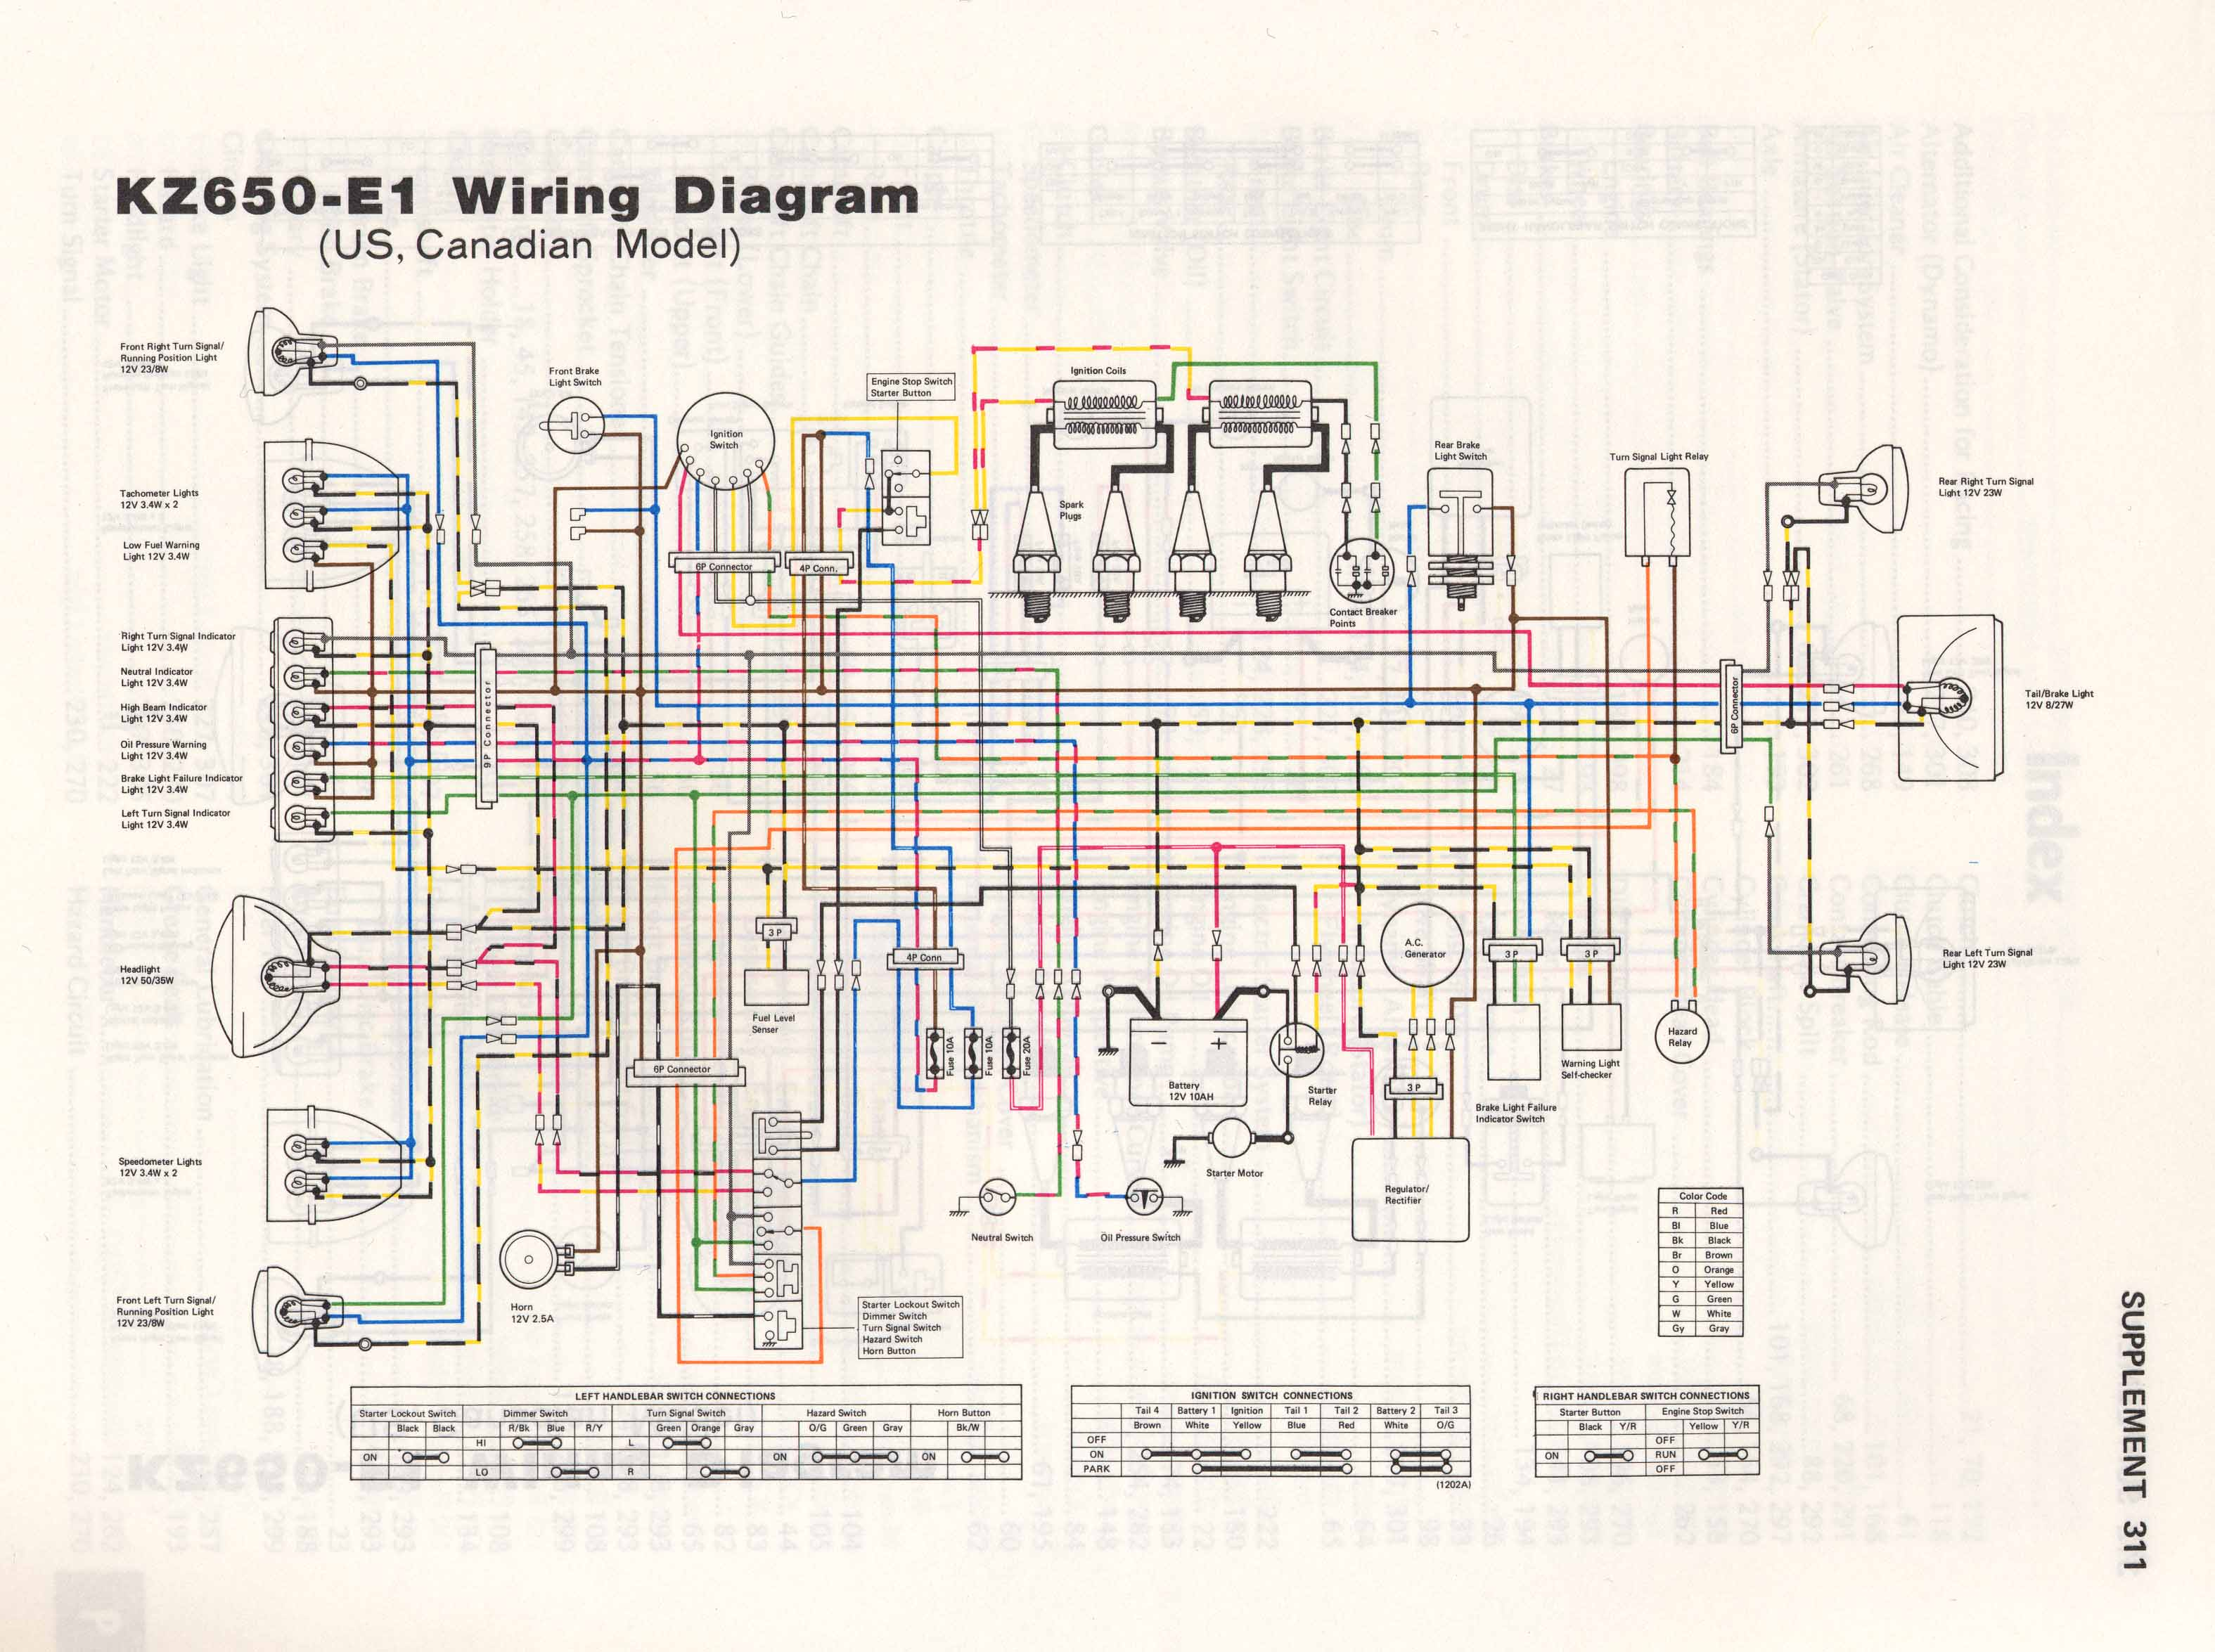 Kz650 Info Wiring Diagrams C6 Wiring Diagrams D1 Wiring Diagrams